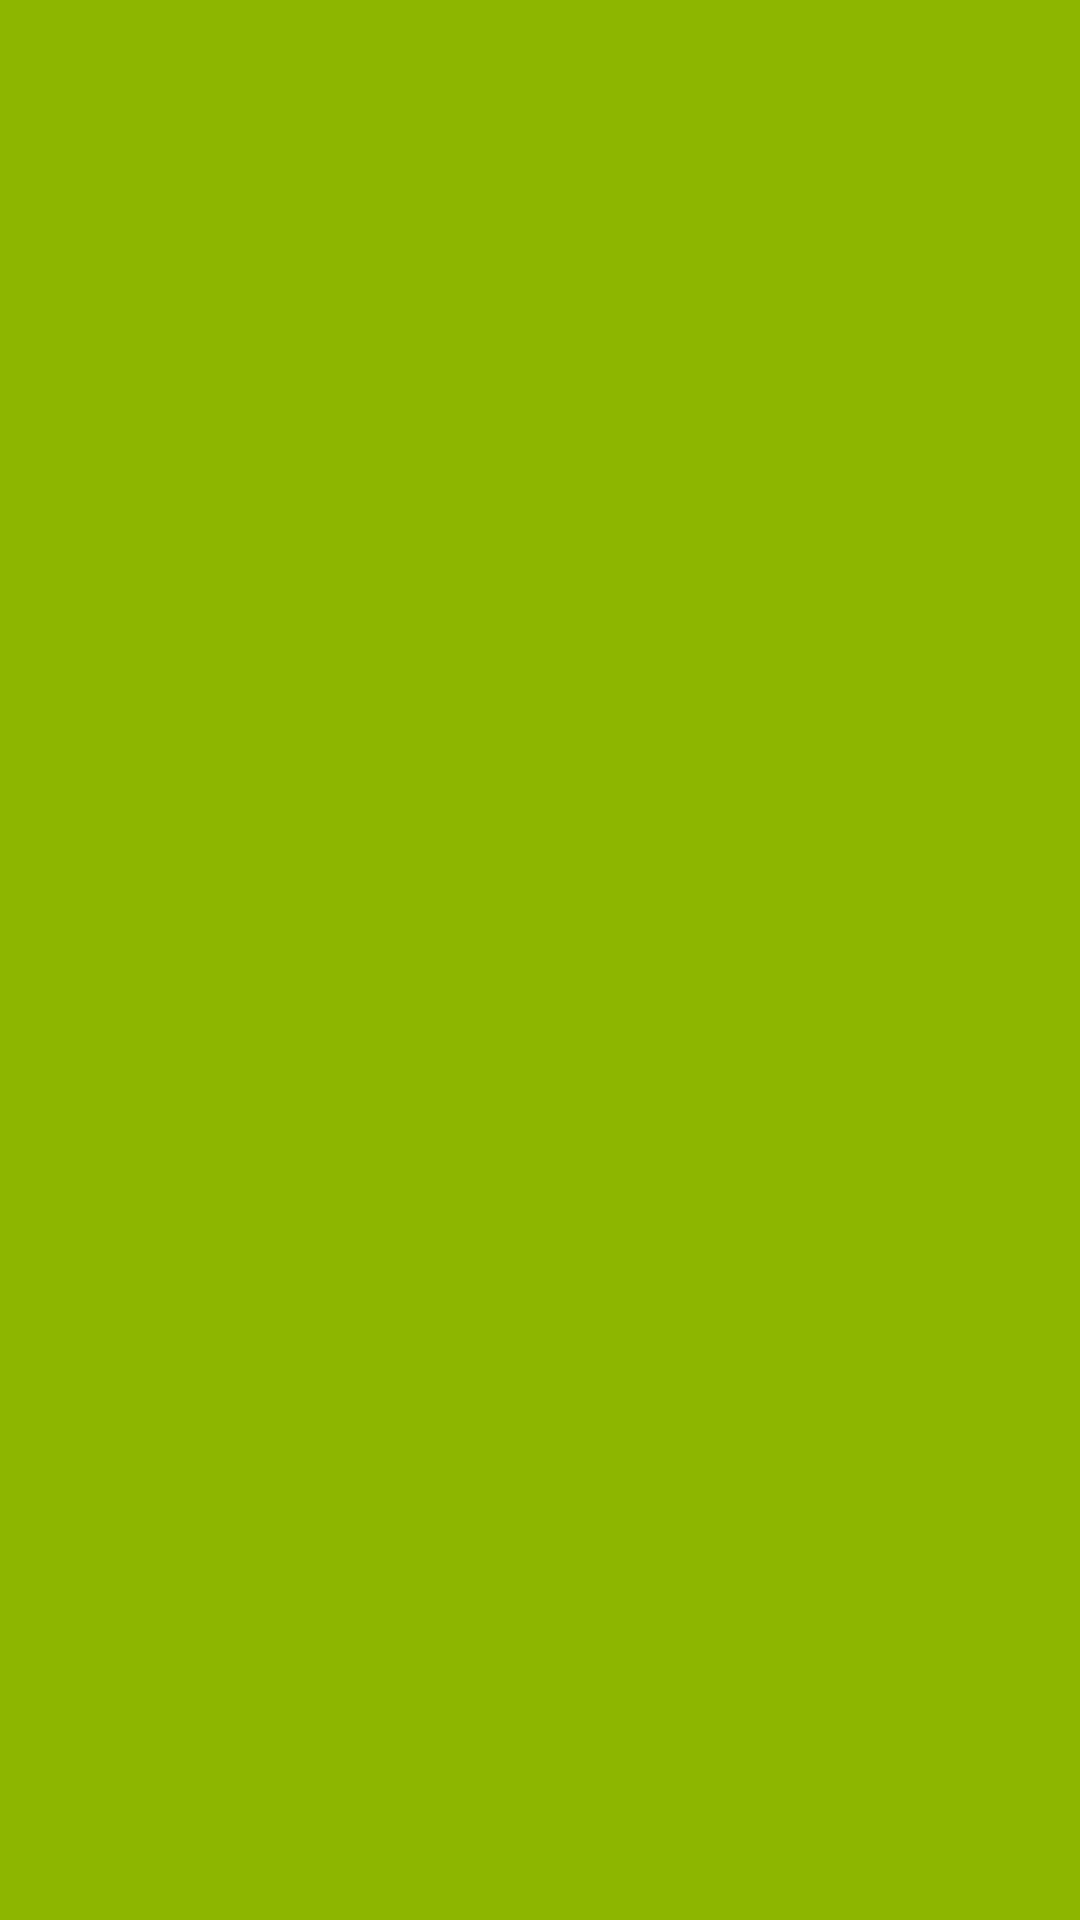 1080x1920 Apple Green Solid Color Background